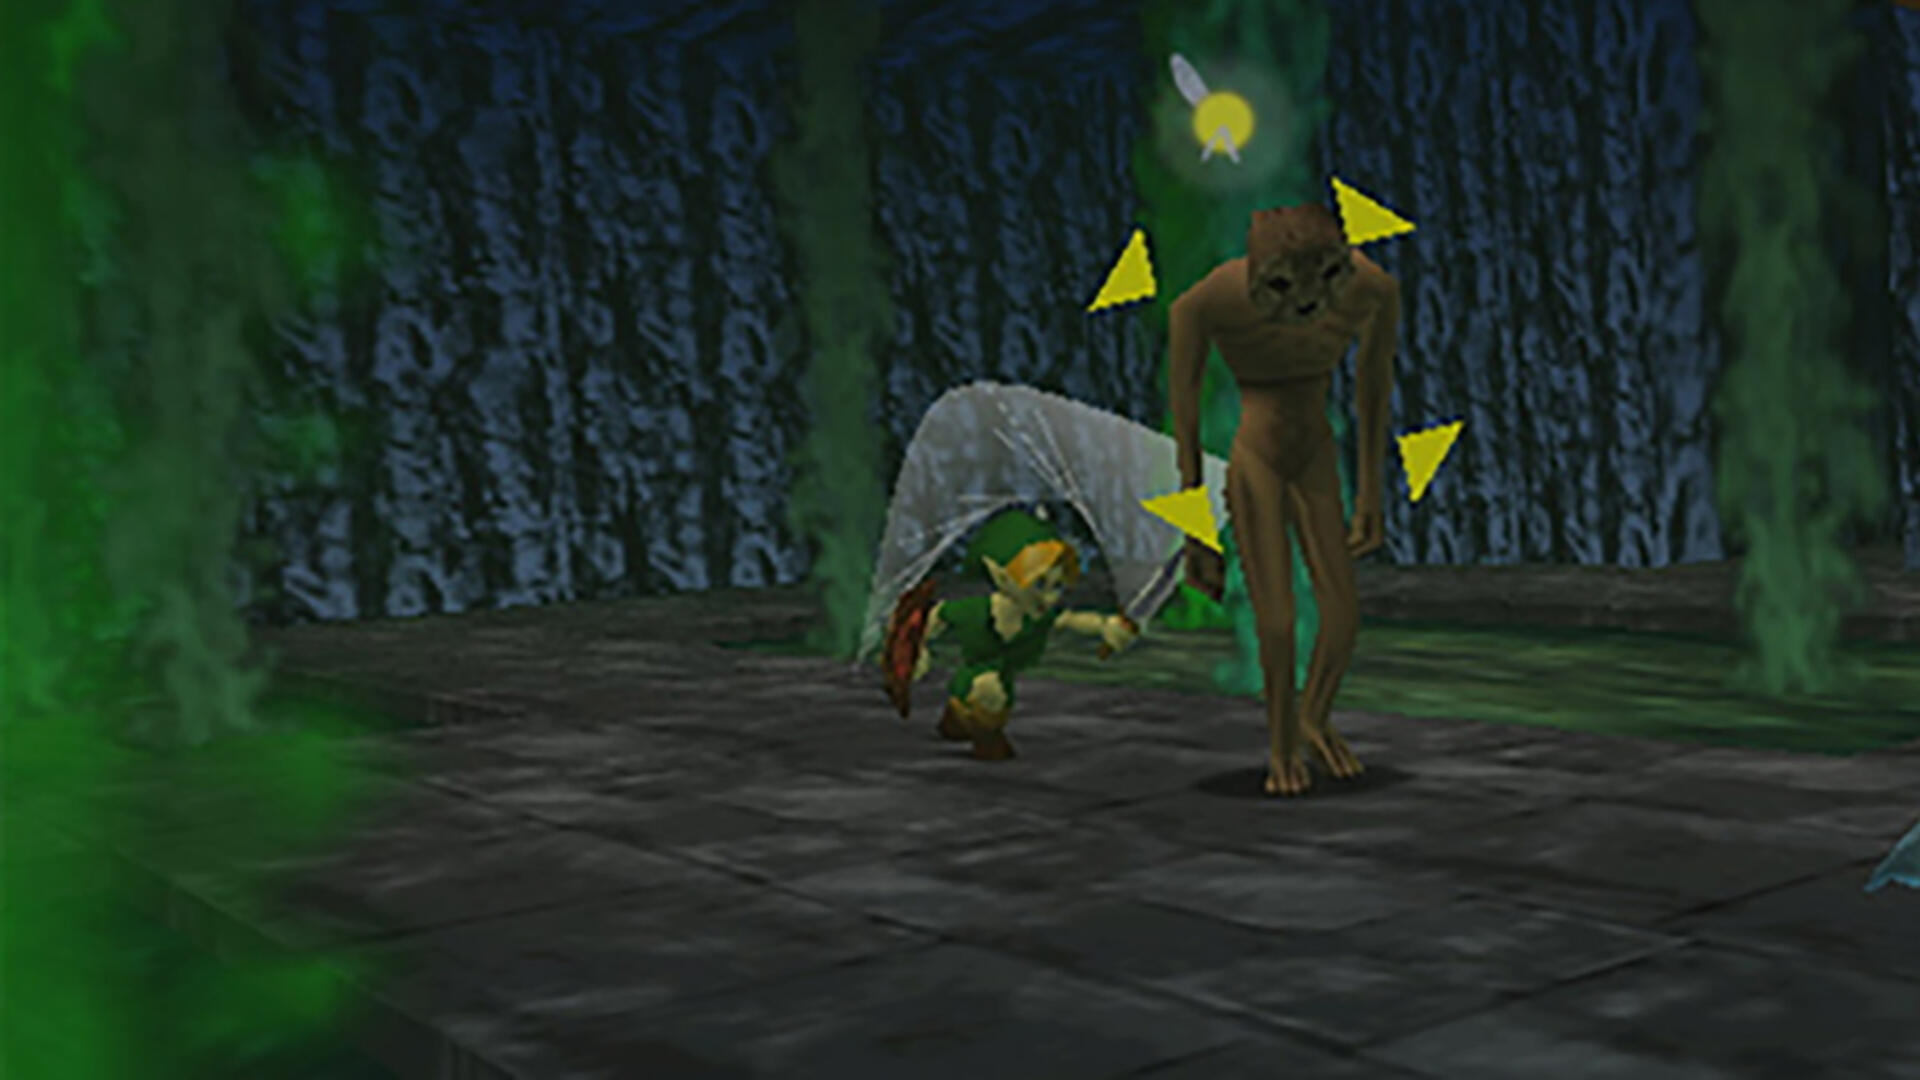 What's Your Favorite Video Game Monster?